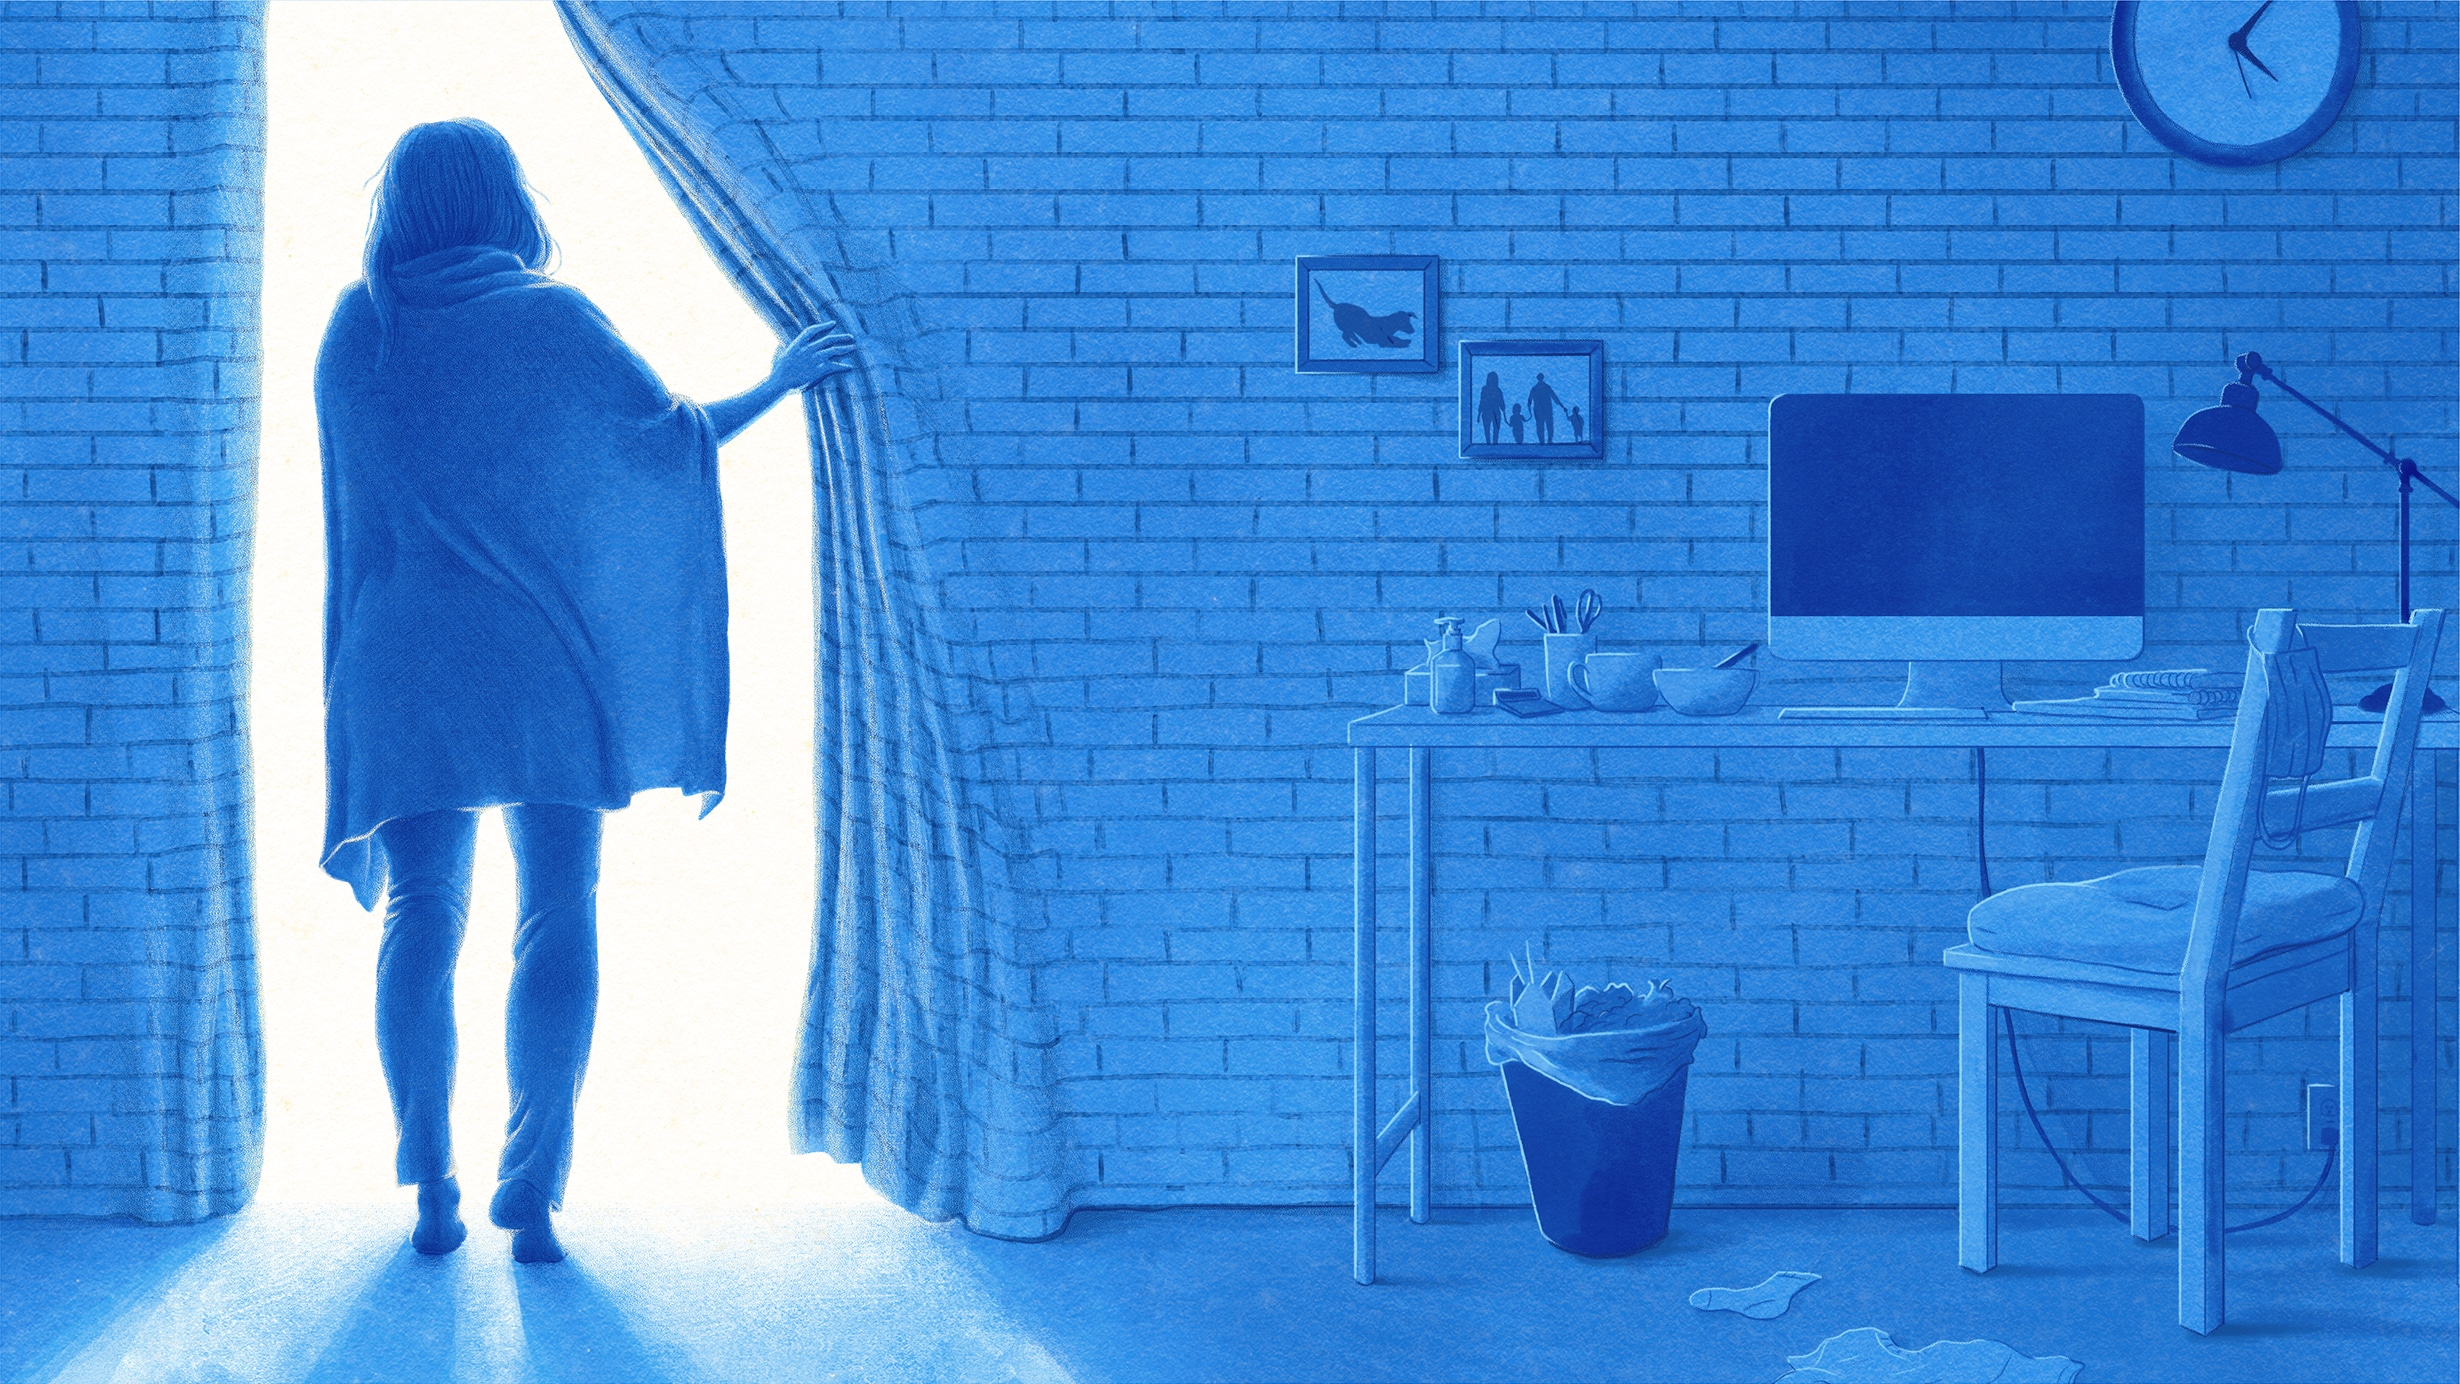 Illustration of woman in lockdown, pulling back her brick wall like a curtain to bring light into her workspace.